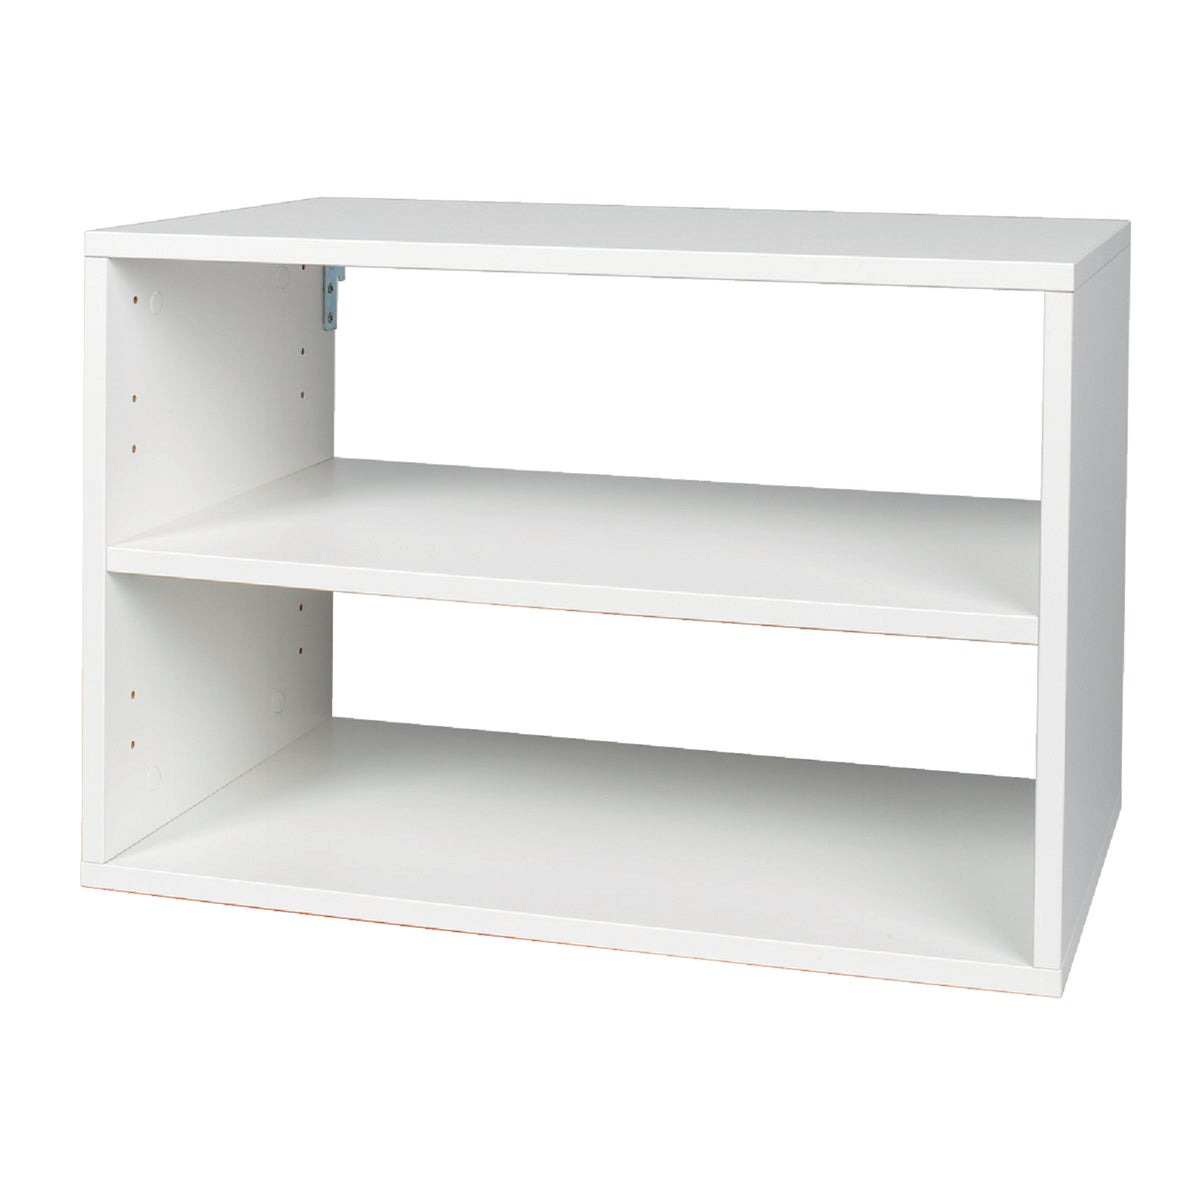 WHITE 1-SHELF O-BOX - 7315012411 by Schulte Corp